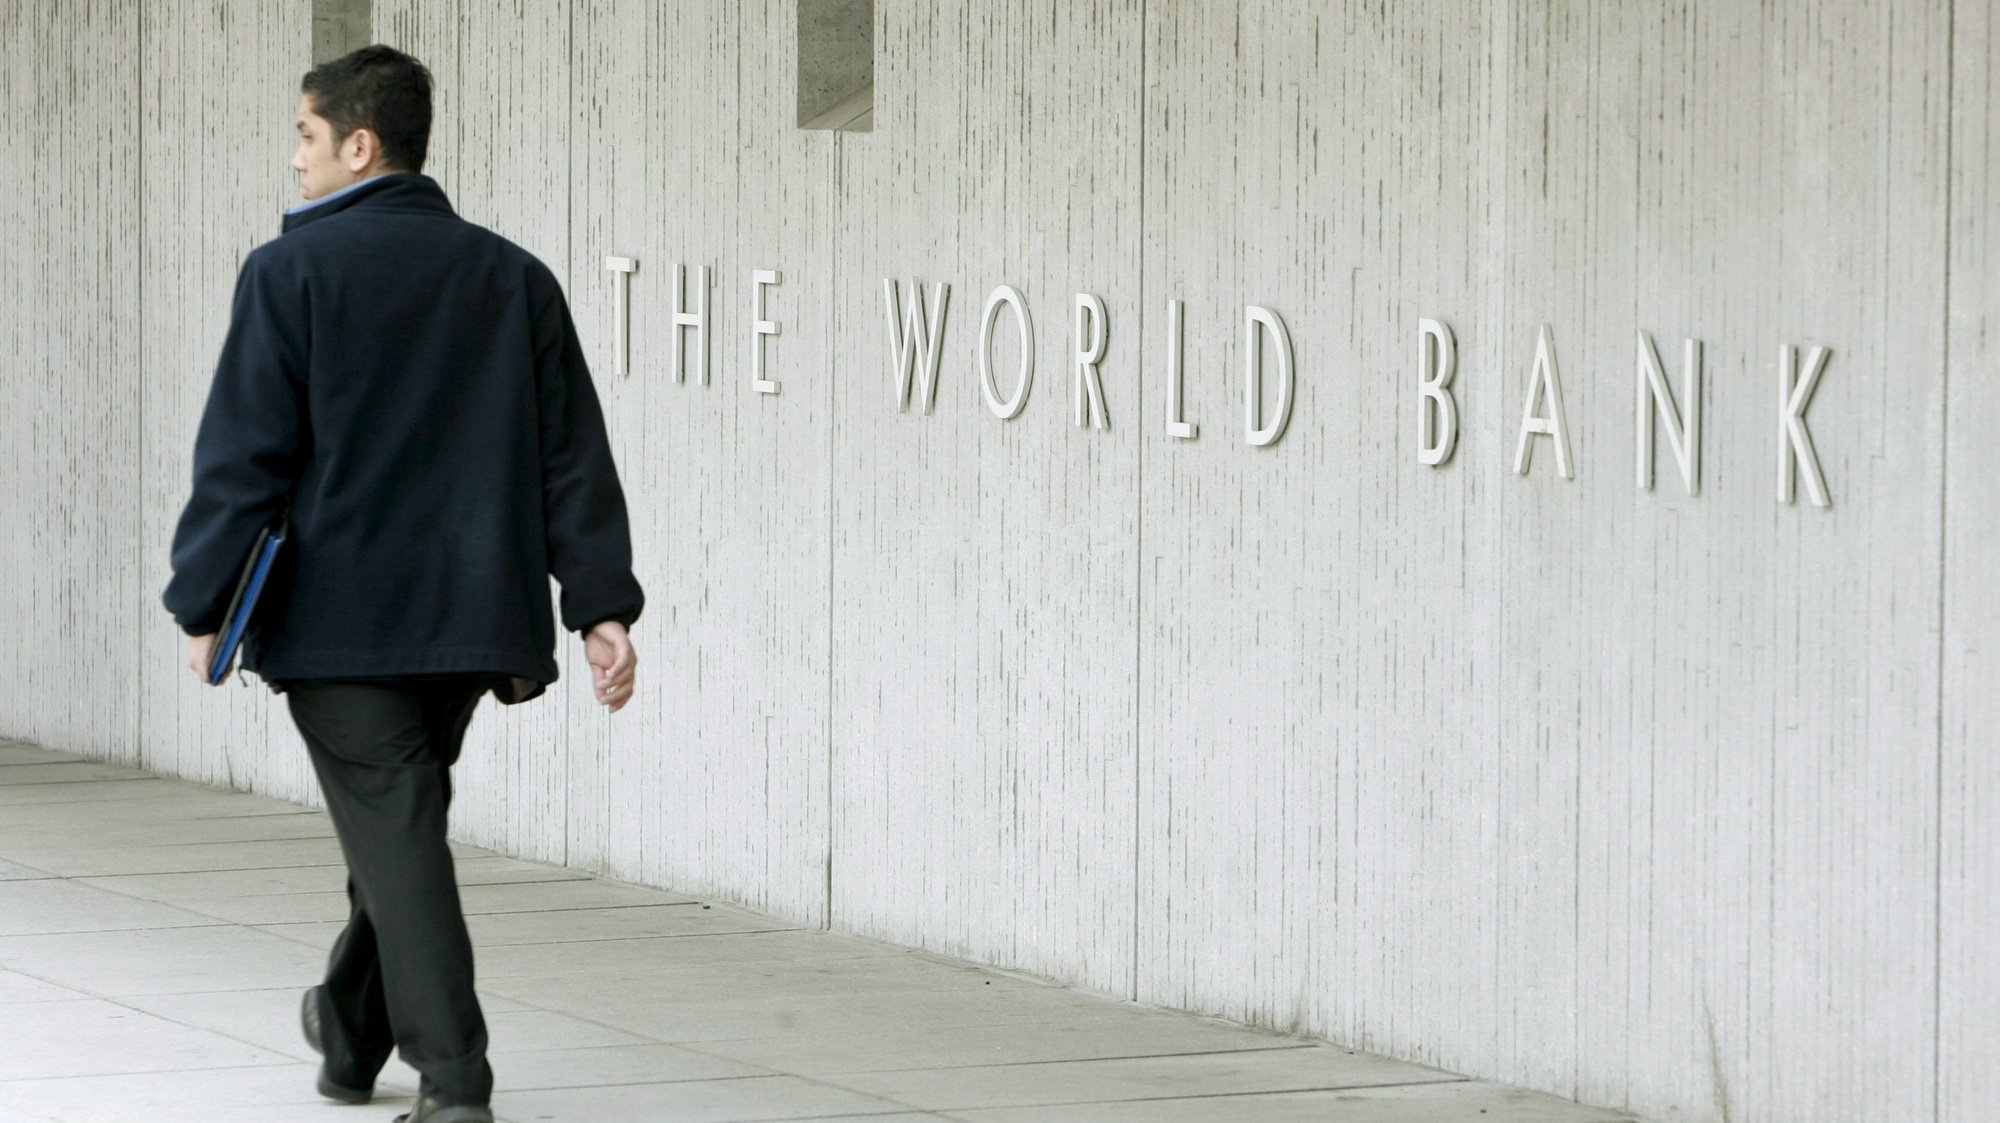 epa04119286 (FILE)A file picture dated 09 April 2008 shows a pedestrian walking past the World Bank building in Washington, DC, USA.  The World Bank says it intends to support Ukraine with up to 3 billion dollars in development projects in 2014. The Washington-based development agency said 10 March 2014 it had received a request for support form the interim Ukrainian government 'and stands ready to continue supporting the Ukrainian people' with badly needed reforms for the economic sector. The projects would need to be approved by the World Bank board, an agency official confirmed.  EPA/MATTHEW CAVANAUGH